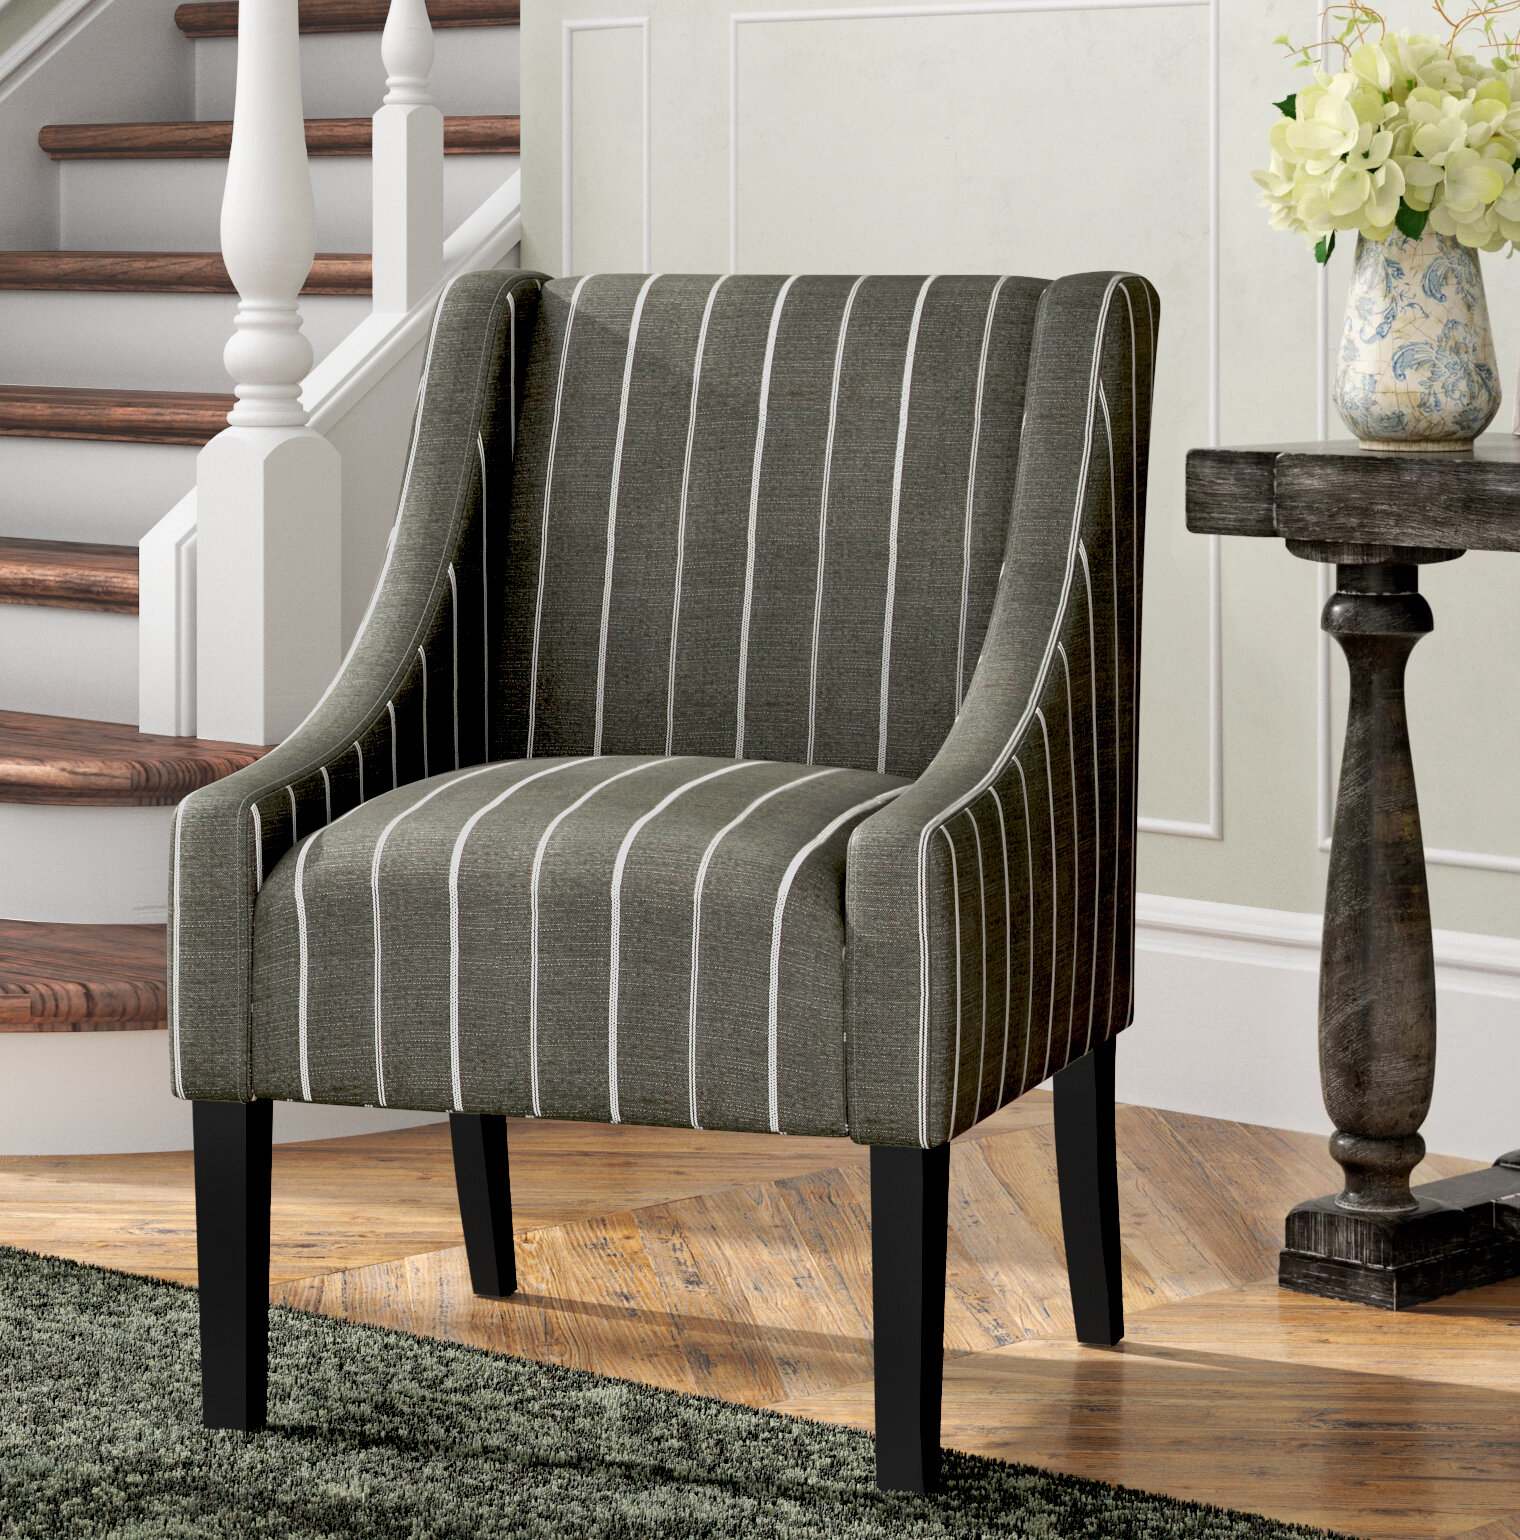 Excellent Londonshire Side Chair Creativecarmelina Interior Chair Design Creativecarmelinacom